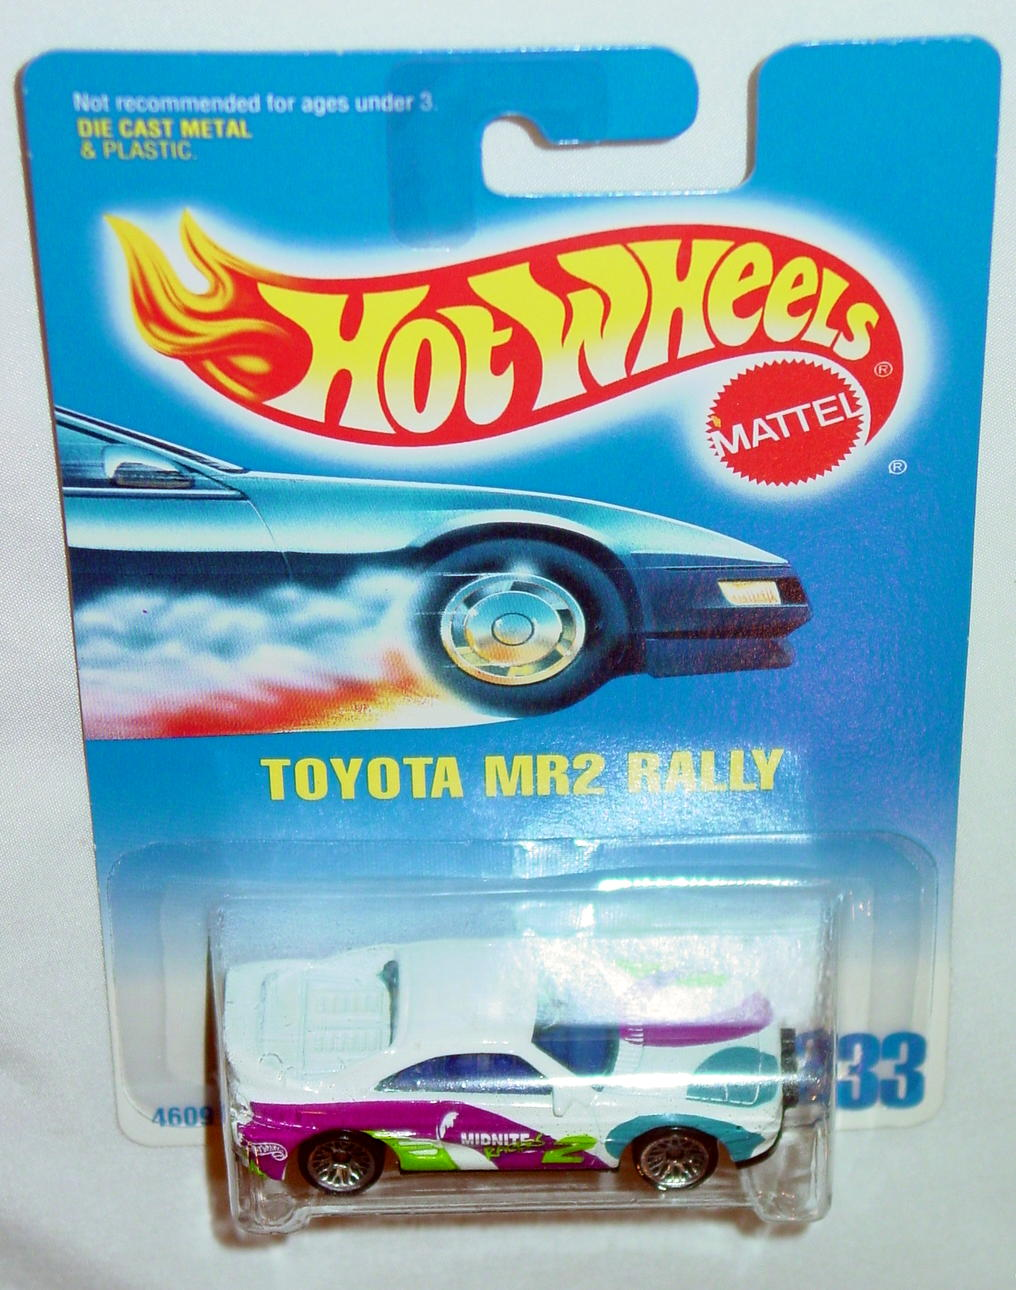 Blackwalls 4609 - 233 Toyota MR2 Rally White with tampo LWCH